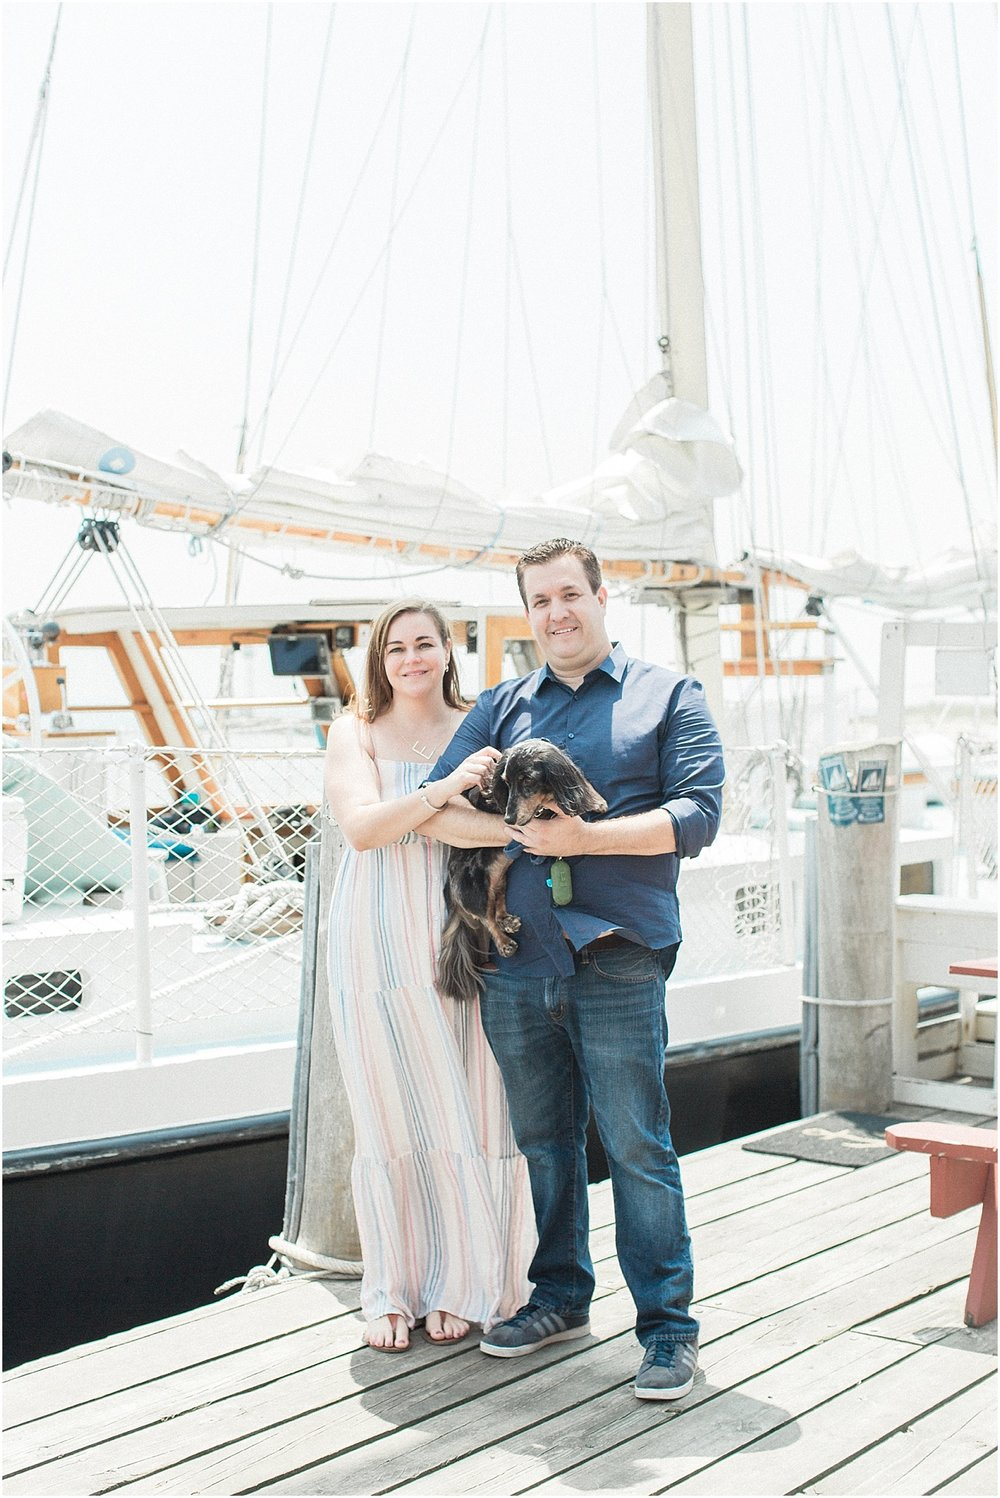 falmouth_liz_eric_proposal_boat_parents_sign_will_you_marry_me_cape_cod_boston_wedding_photographer_meredith_jane_photography_photo_0511.jpg